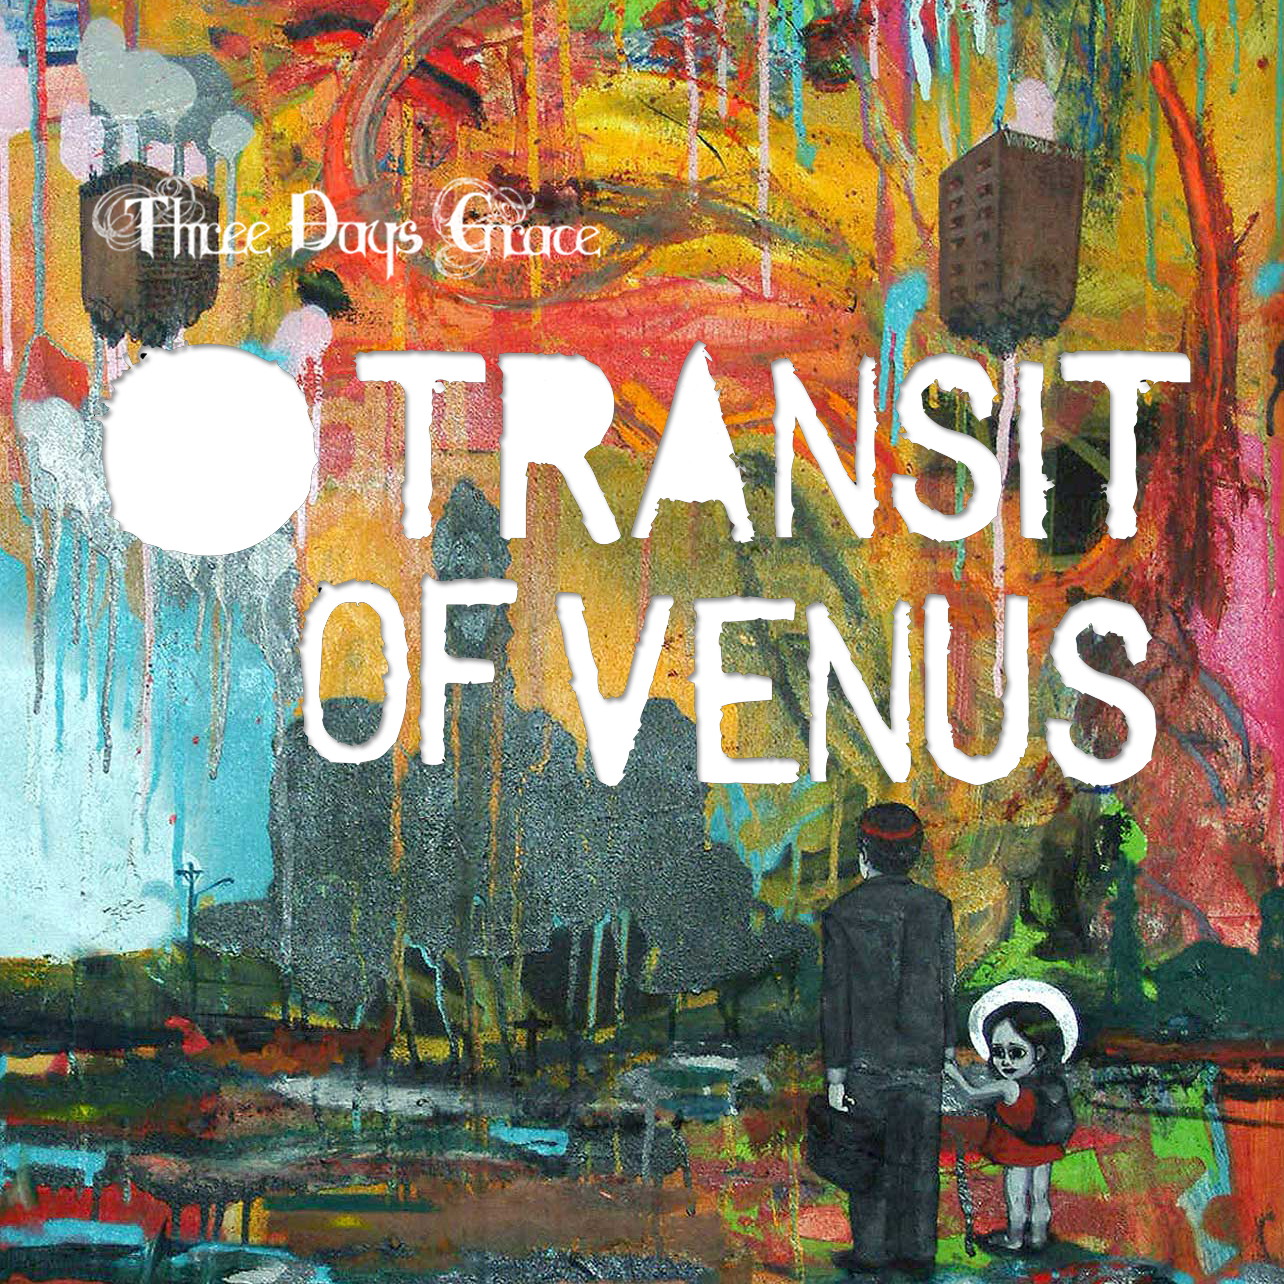 three_days_grace_transit_of_venus_2012.jpg